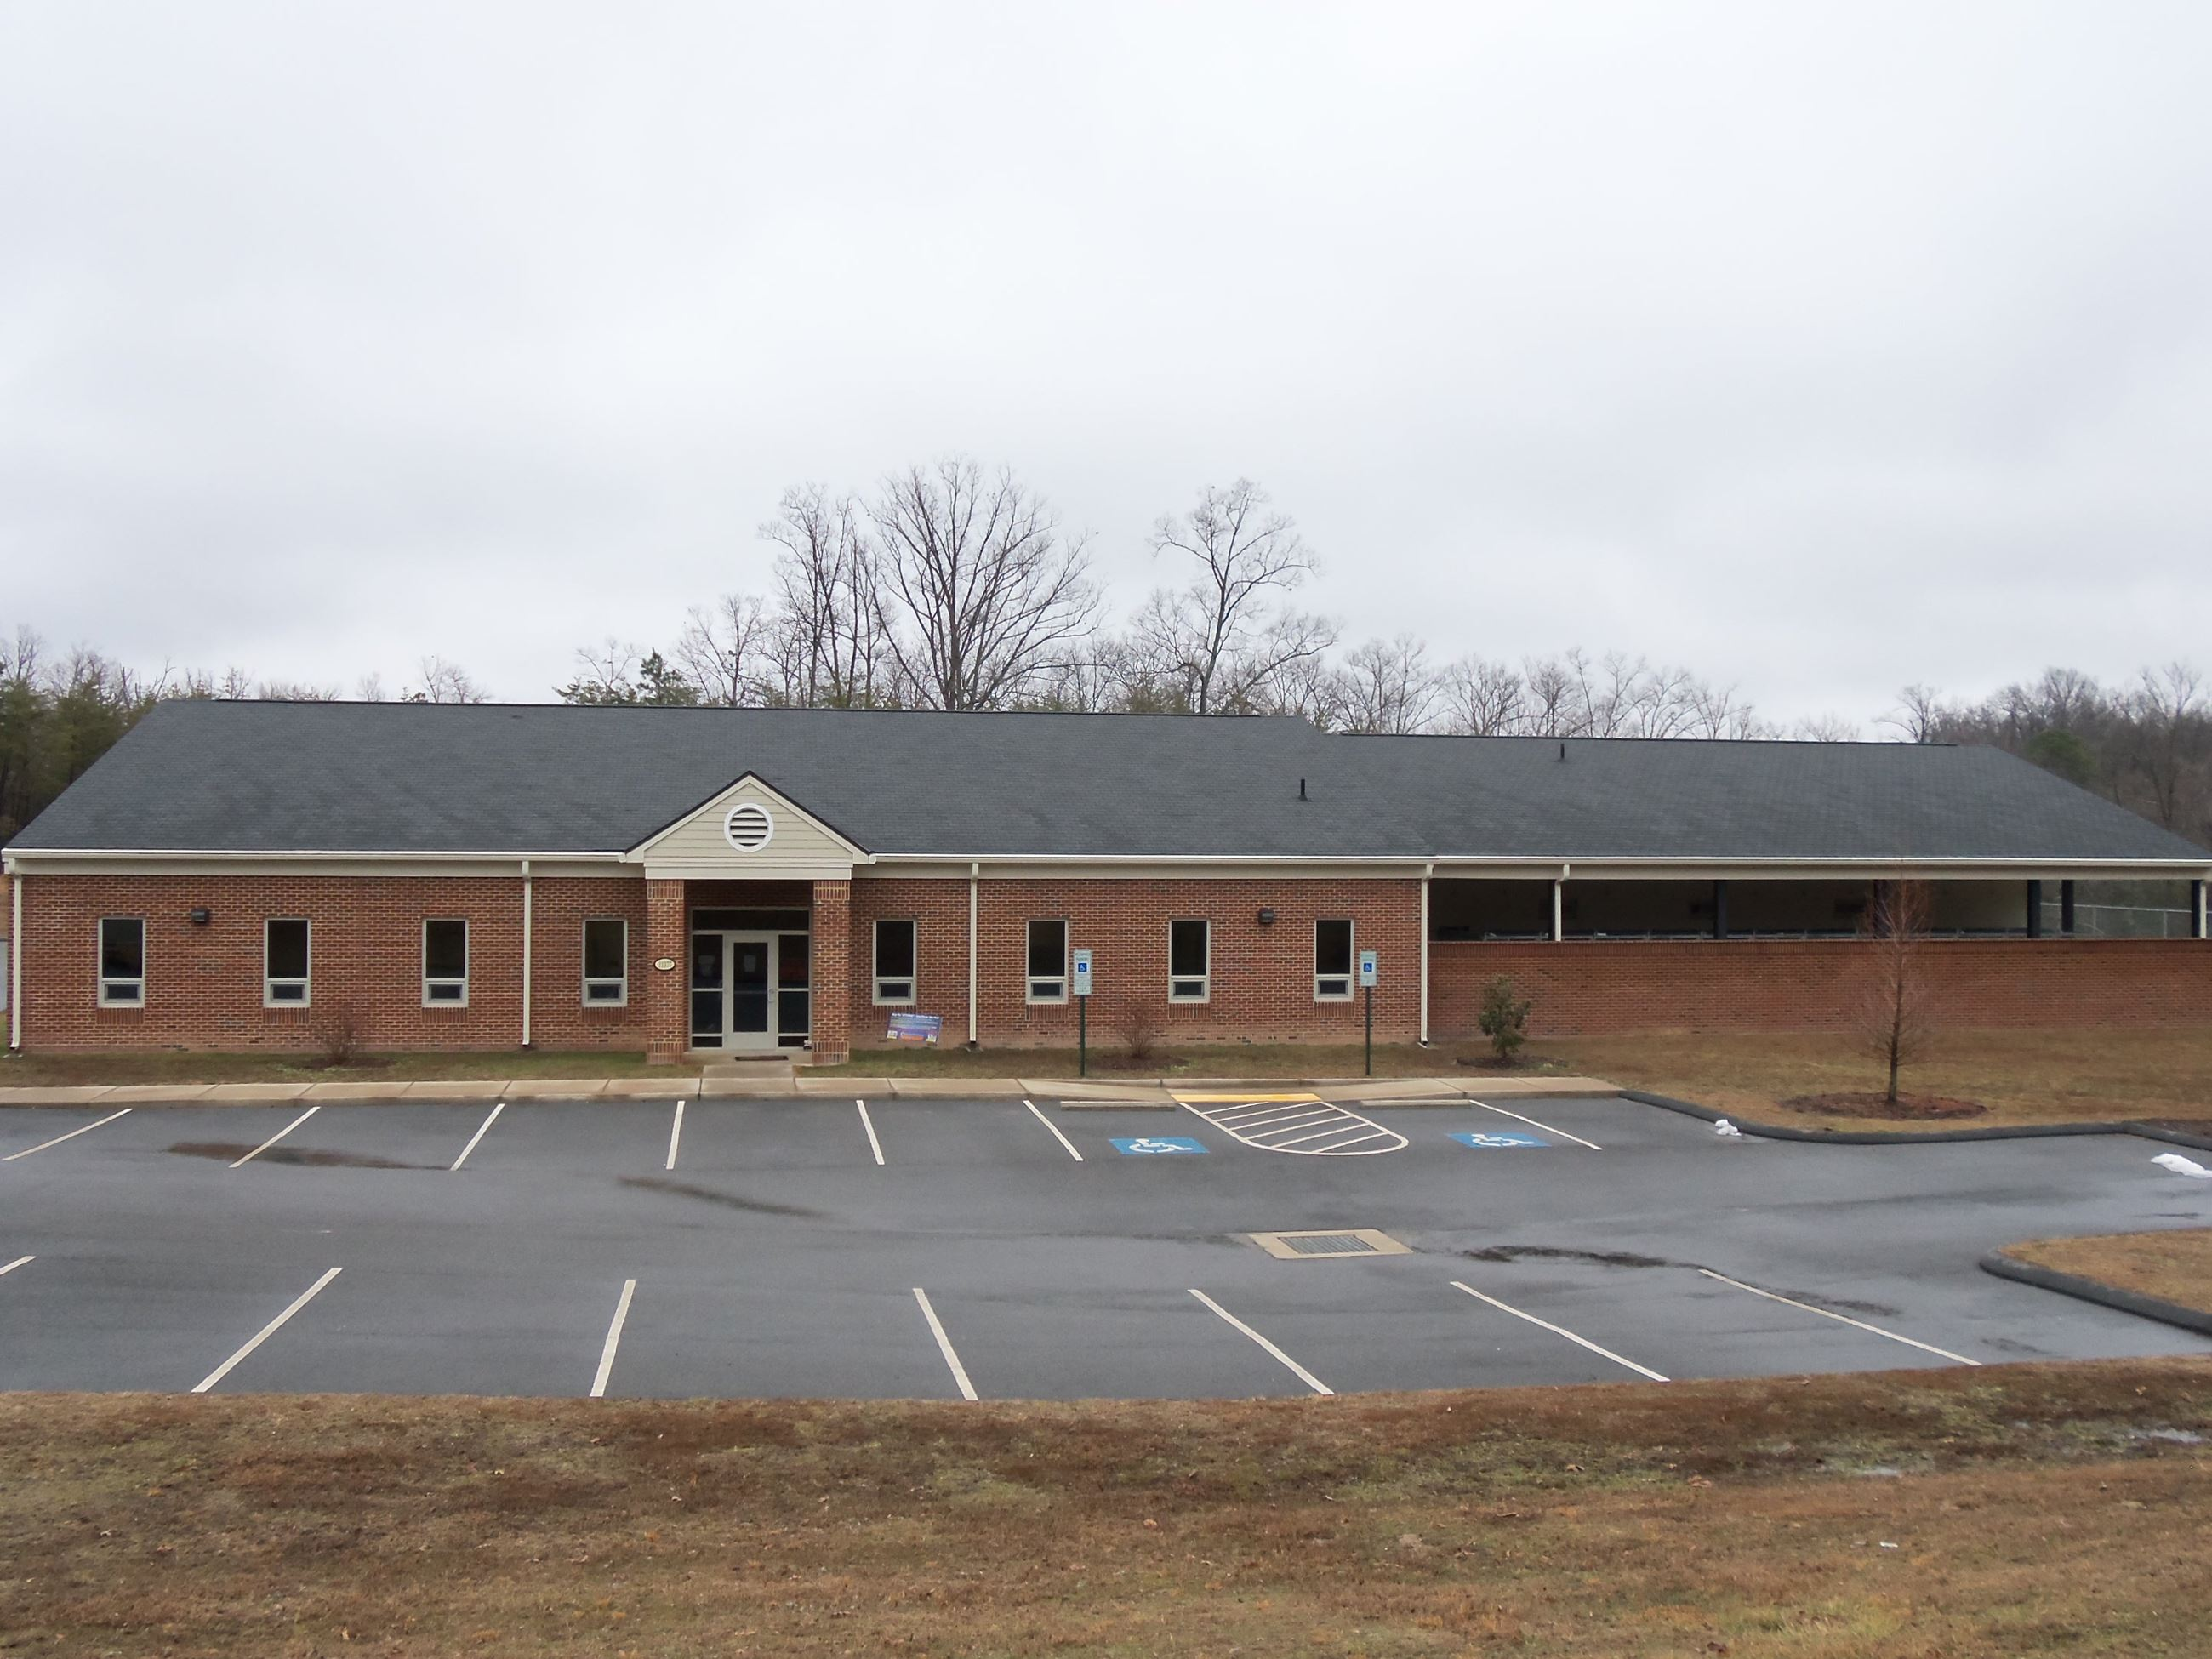 Animal Control Building of King George County